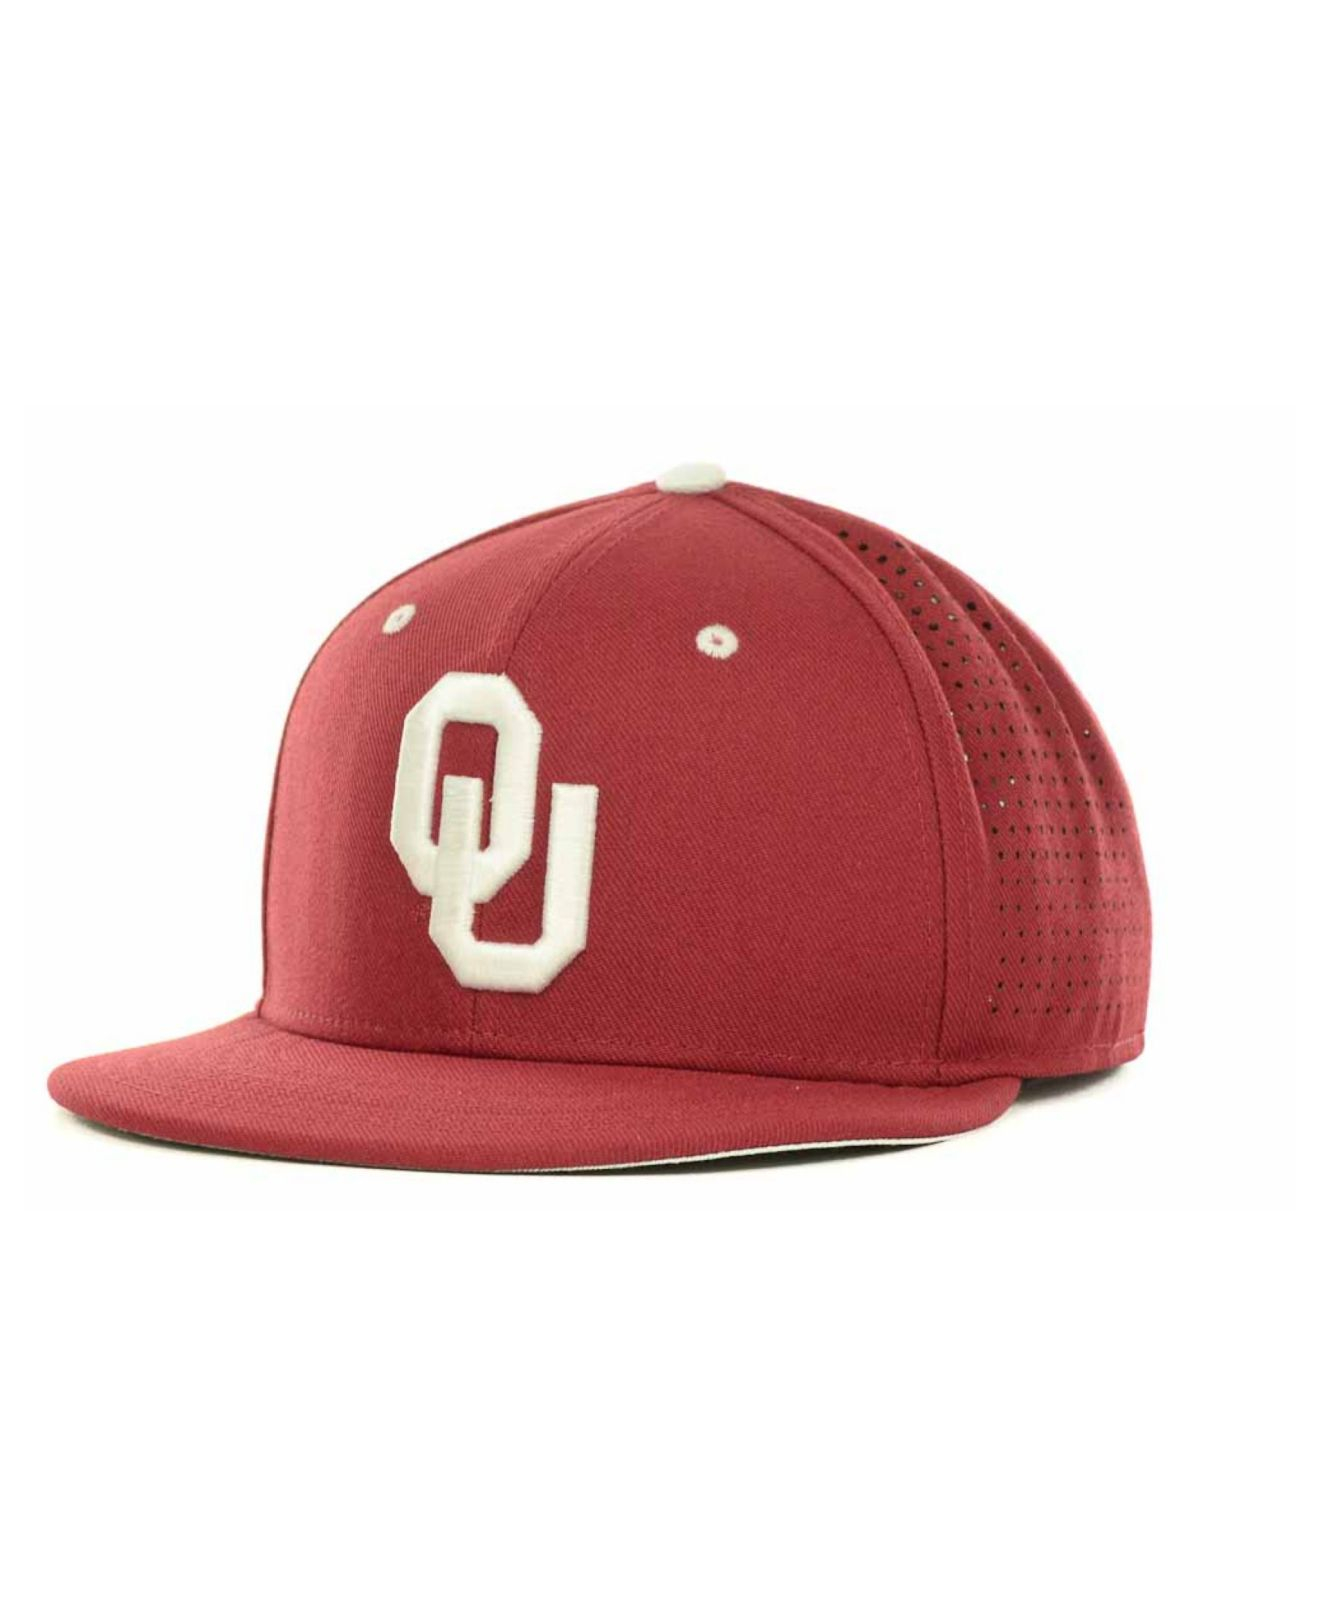 designer fashion 2faca 23641 ... coupon code for lyst nike oklahoma sooners ncaa authentic vapor fitted  cap in red 77d8f 24d38